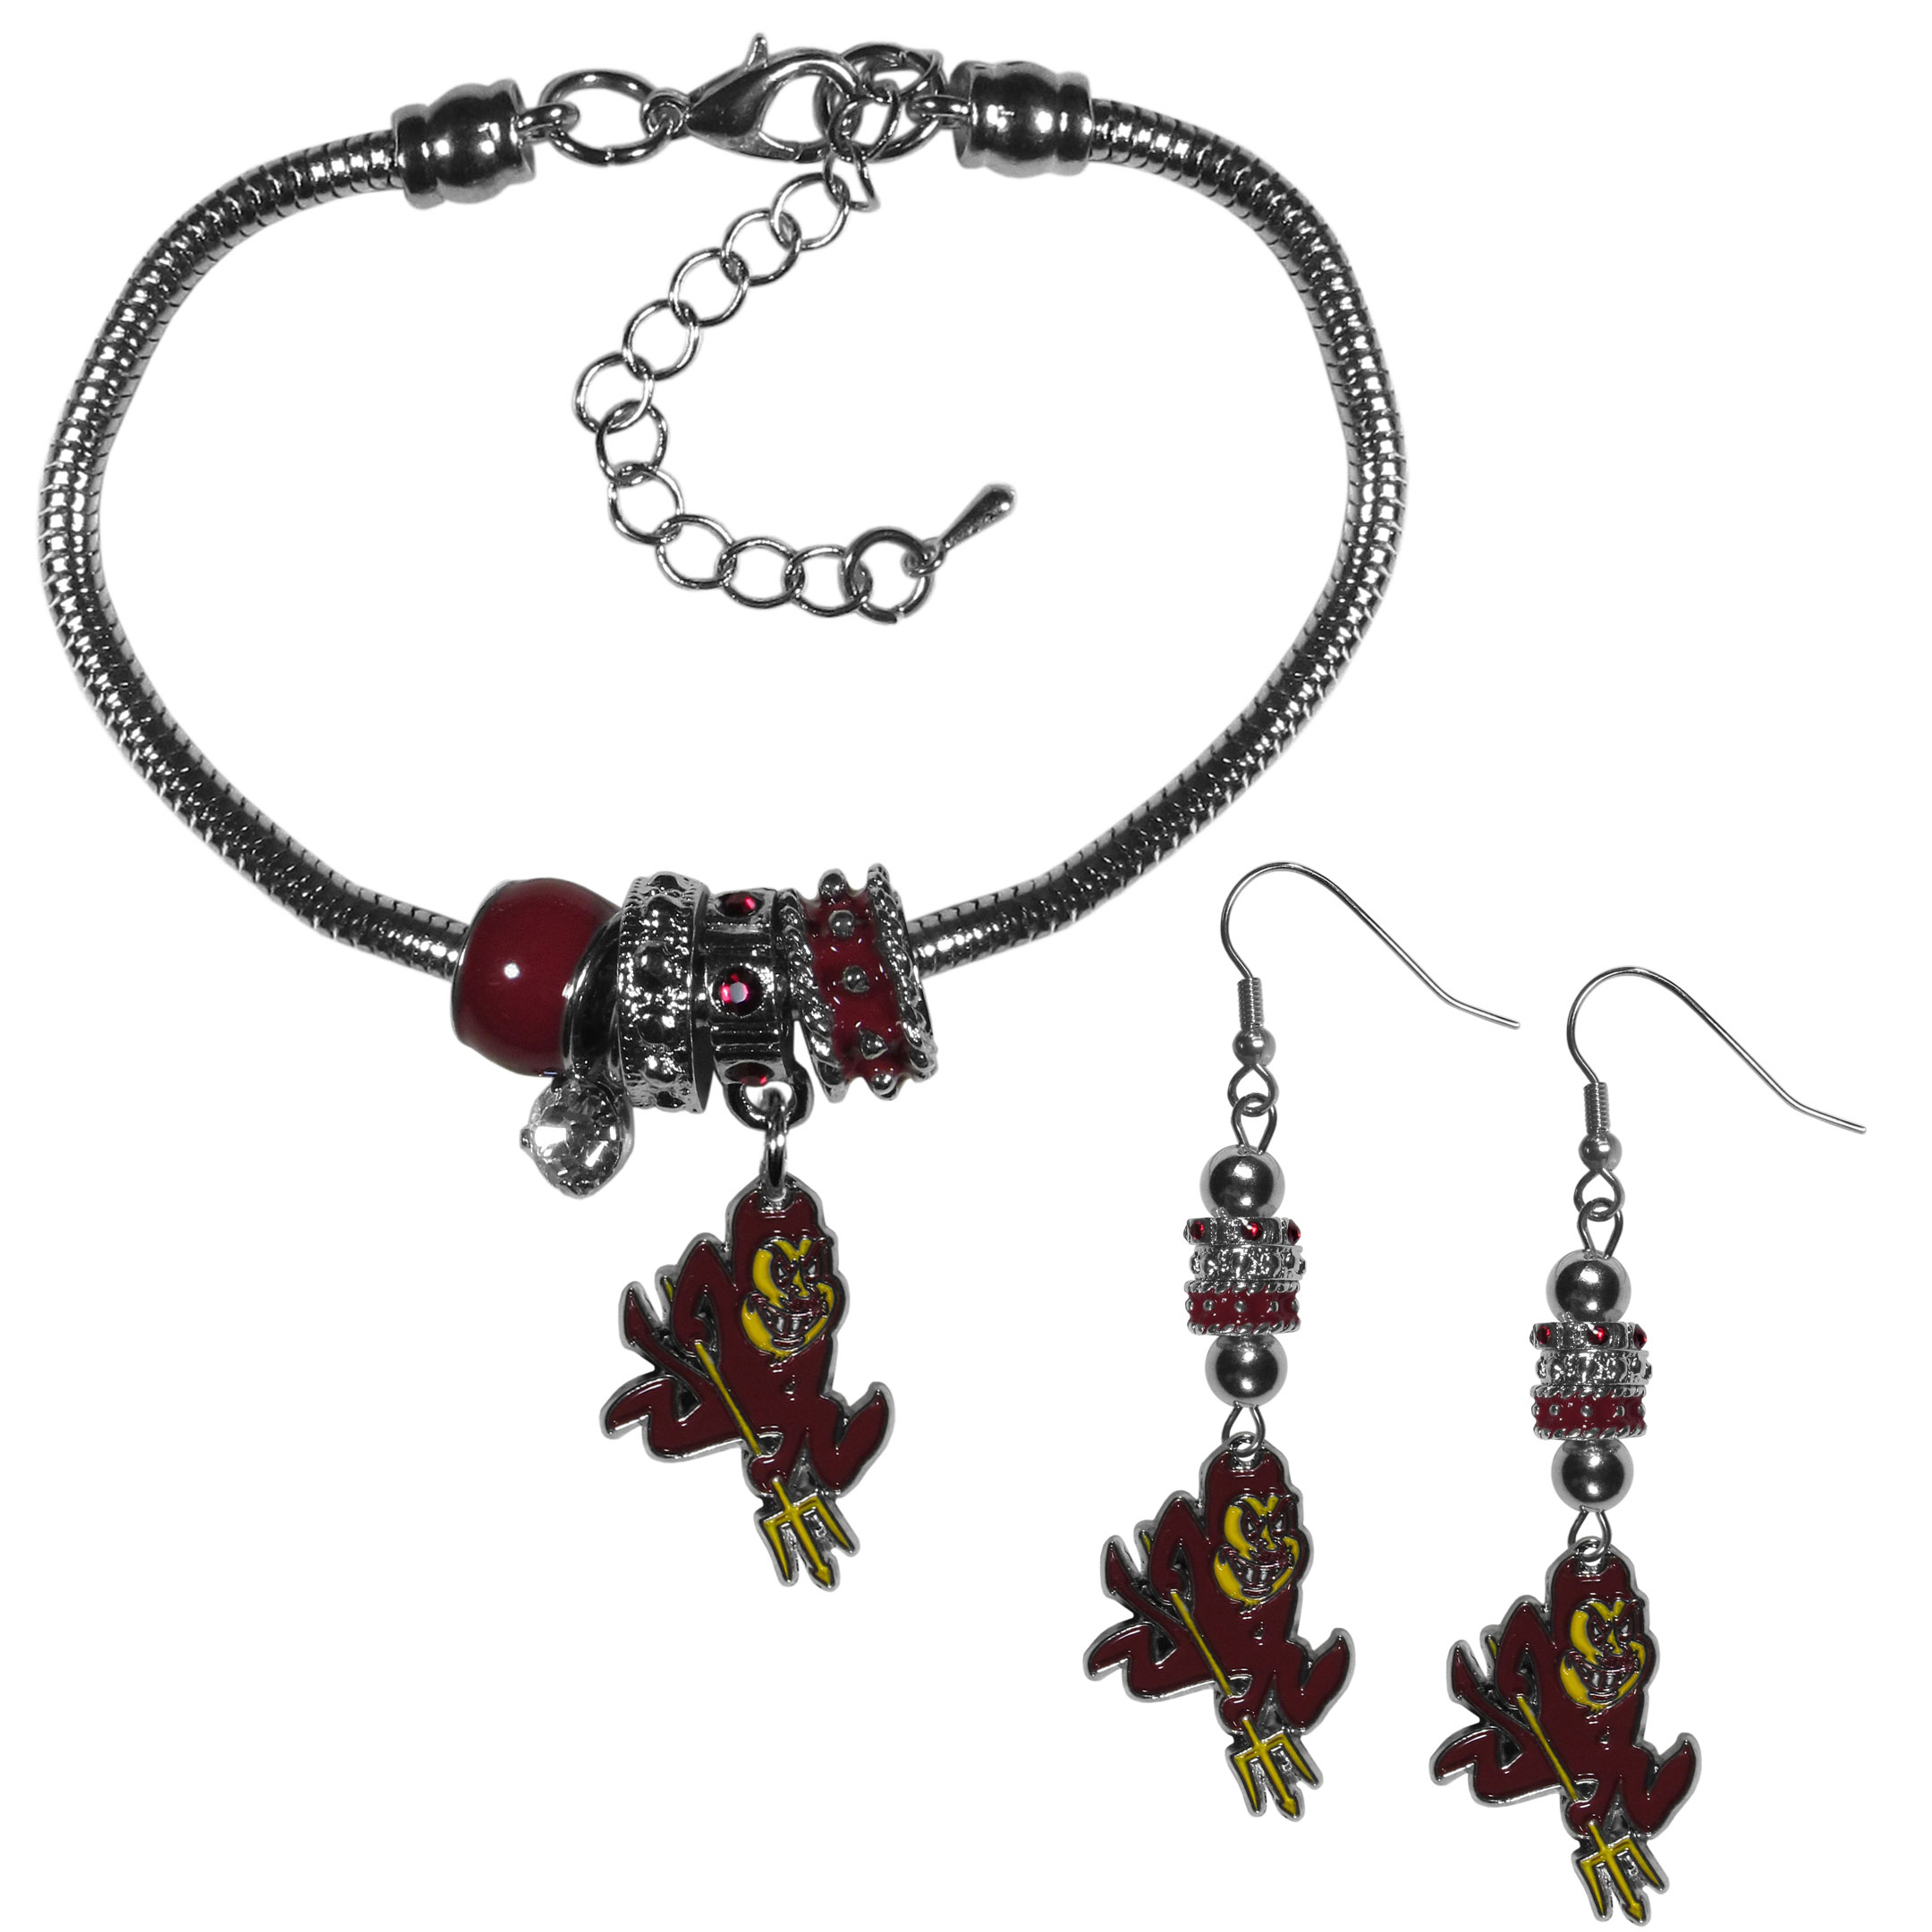 Arizona St. Sun Devils Euro Bead Earrings and Bracelet Set - We combine the popular Euro bead style with your love of the Arizona St. Sun Devils with this beautiful jewelry set that includes earrings and a matching bracelet. The stylish earrings feature hypoallergenic, nickel free fishhook posts and 3 team colored Euro beads and a metal team charm. The matching snake chain bracelet is 7.5 inches long with a 2 inch extender and 4 Euro beads with a rhinestone charm and team charm.